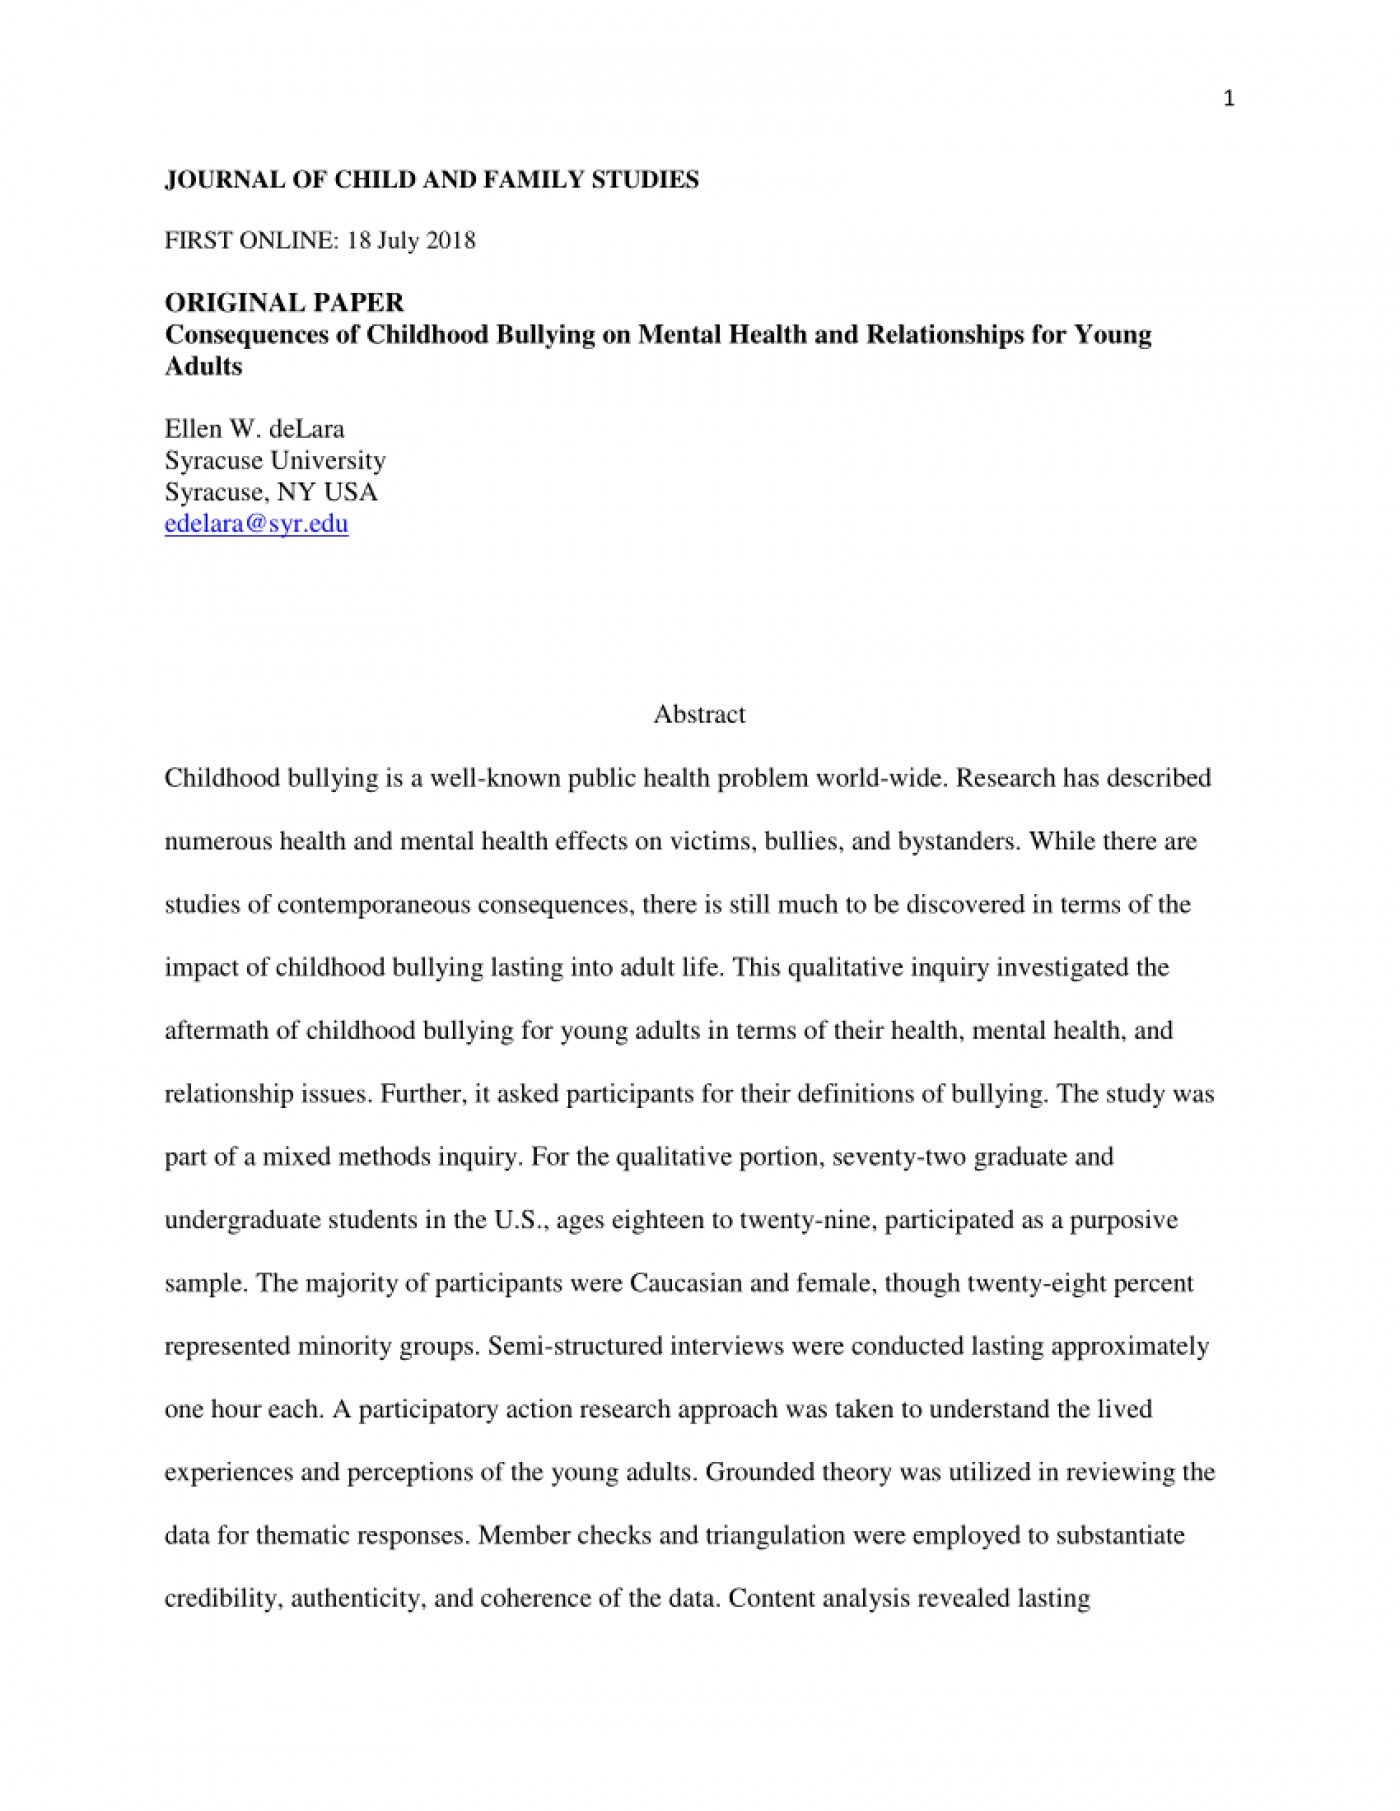 003 Research Paper Largepreview Psychological Effects Of Breathtaking Bullying 1400